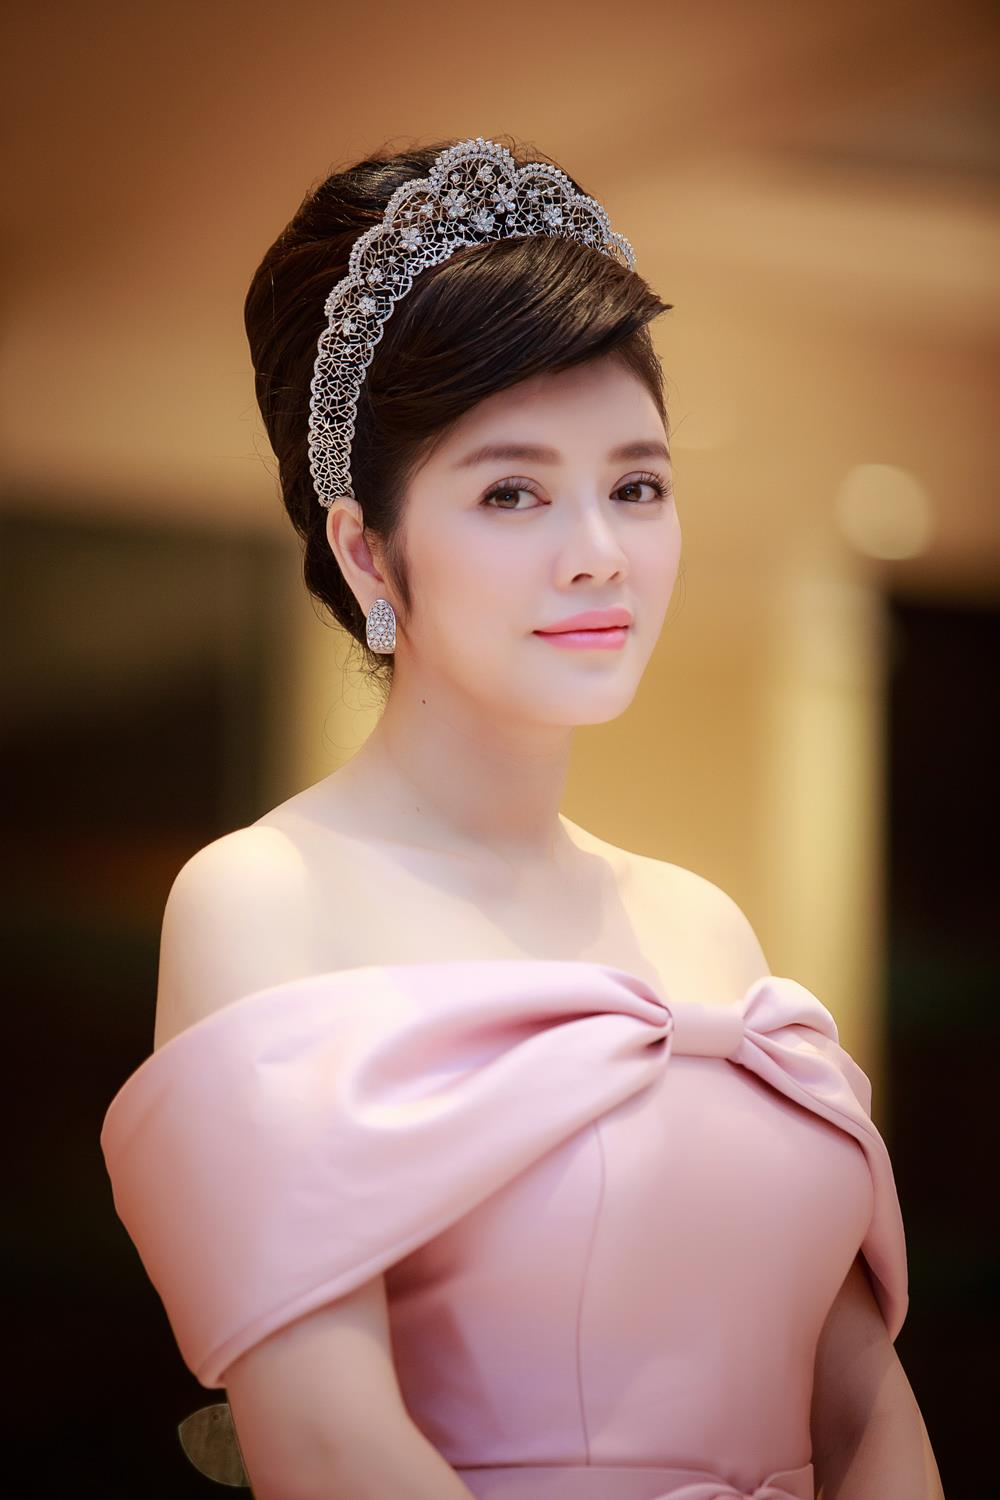 ly nha ky la giam khao miss grand international, huyen my loi the? hinh anh 9